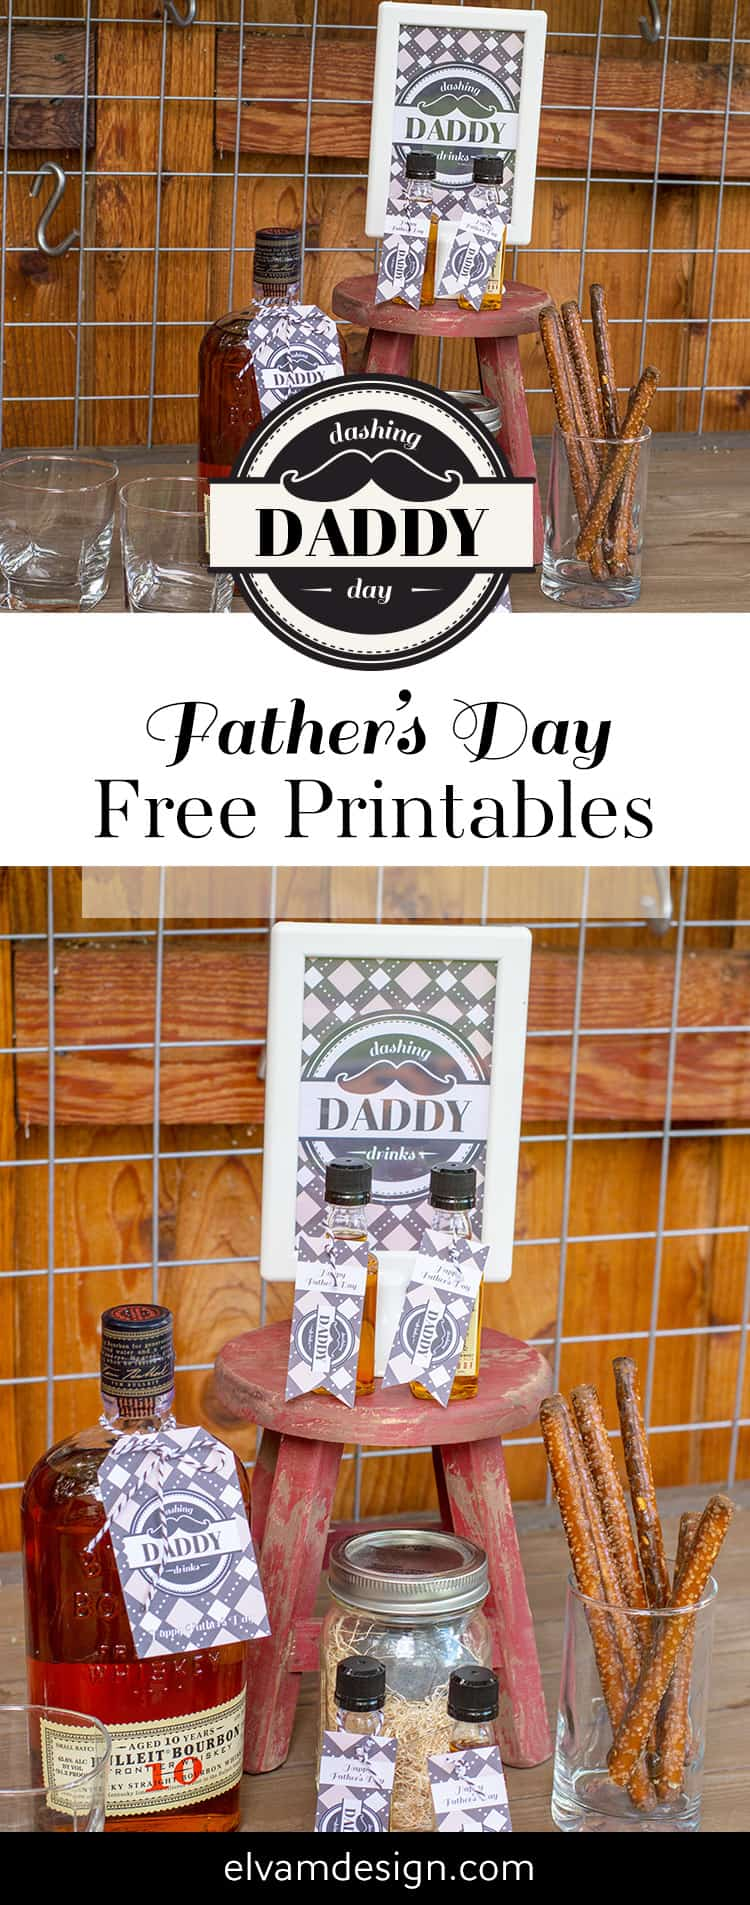 Father's Day Free Printables from Elva M Design Studio. Download these free tags and sign for an easy DIY gift.